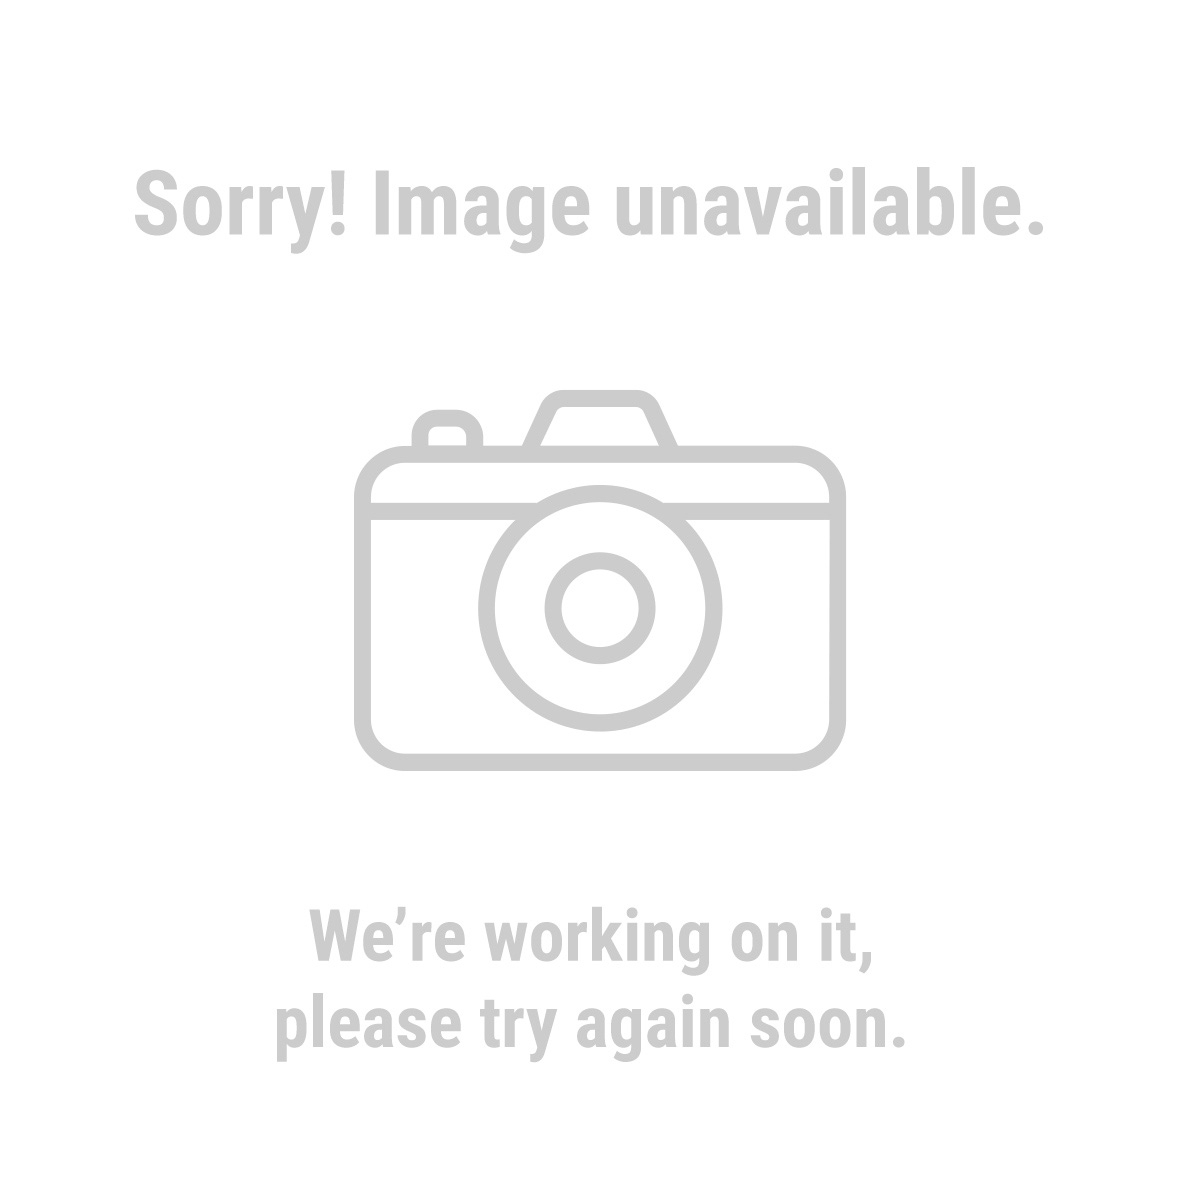 Storehouse 94458 24 Compartment Large Storage Container